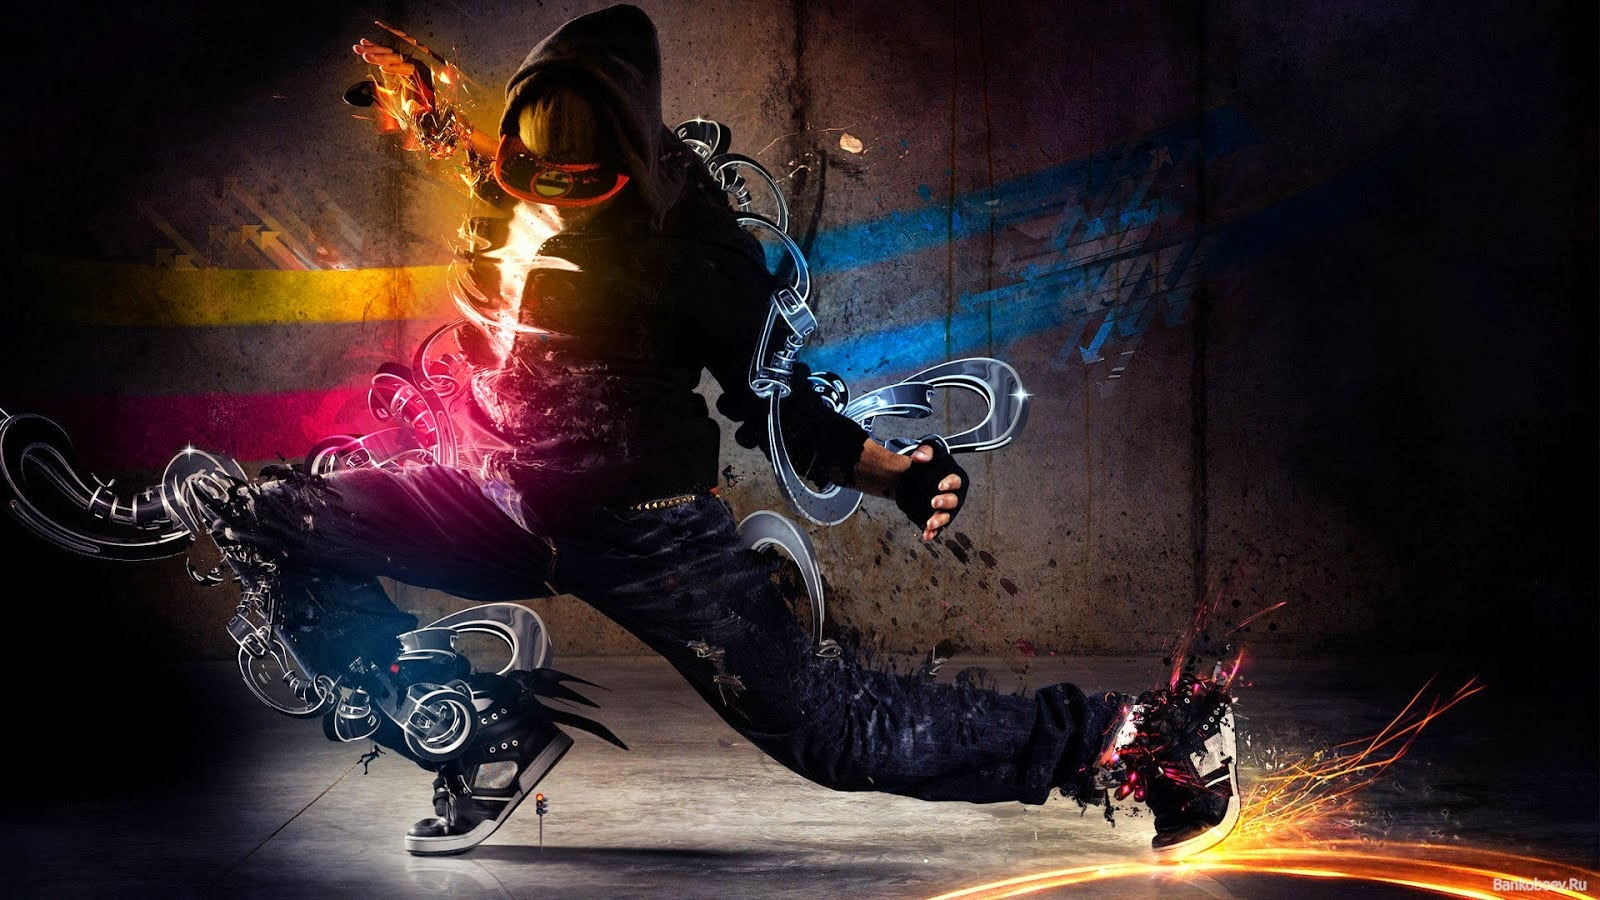 Collection of Dance Wallpapers on HDWallpapers